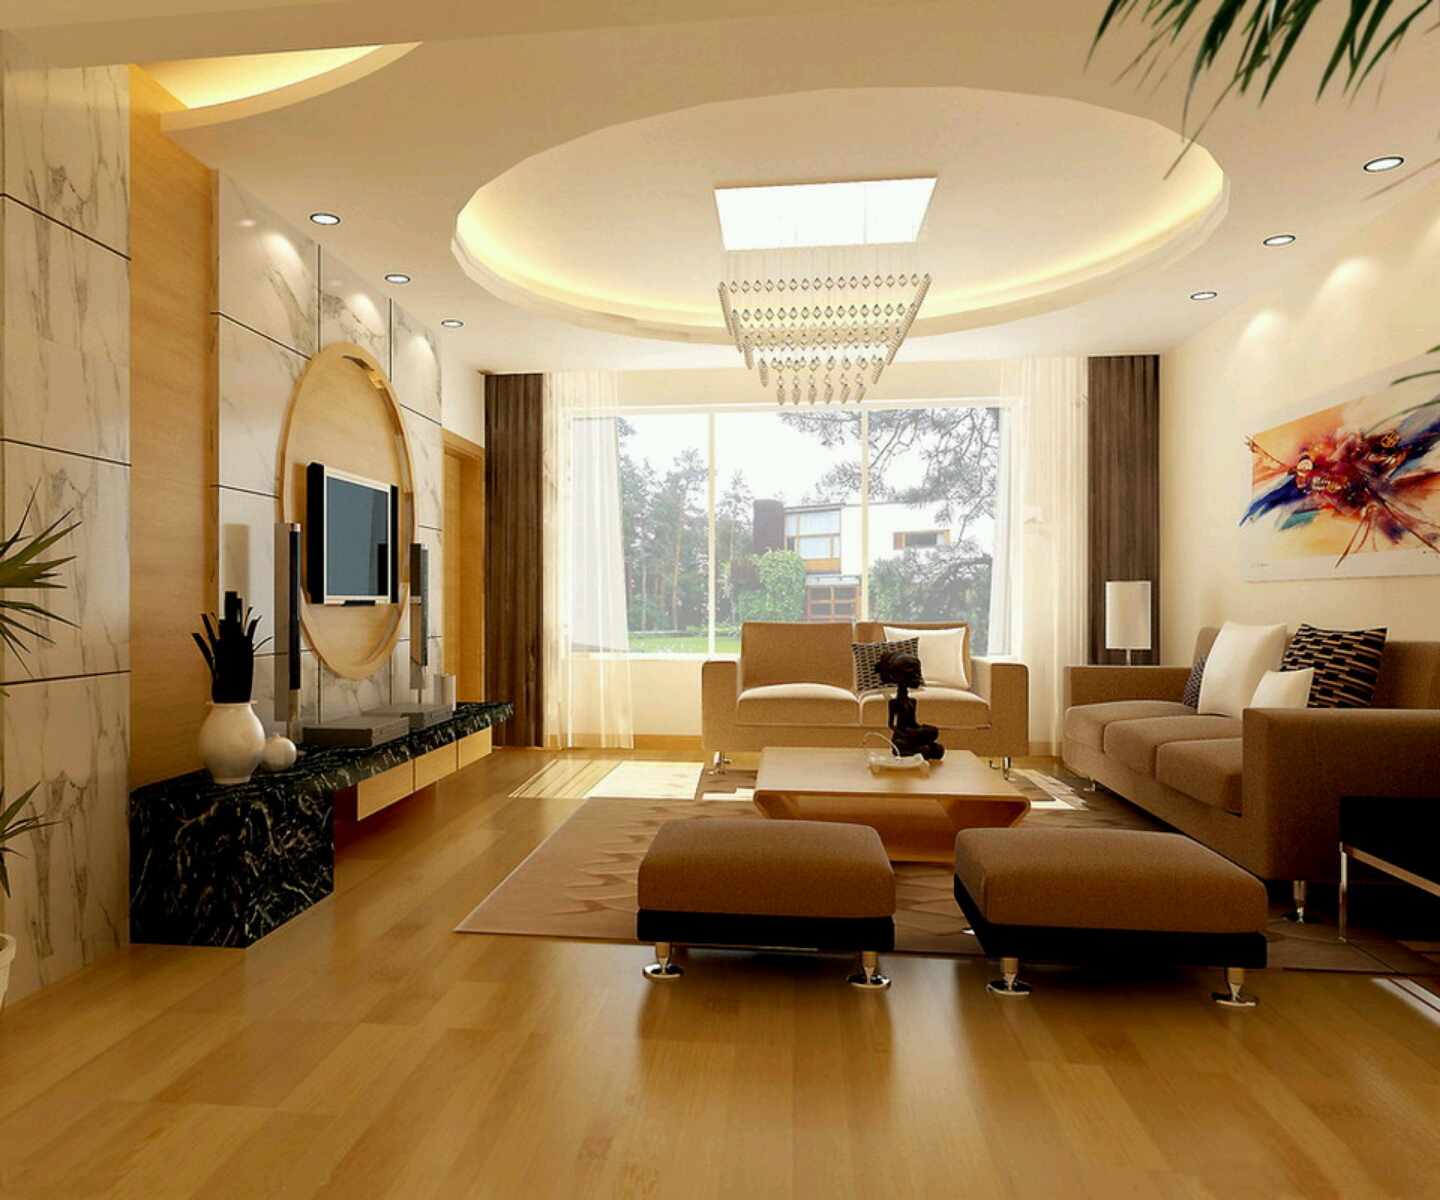 New home designs latest modern interior decoration for Latest interior designs for home